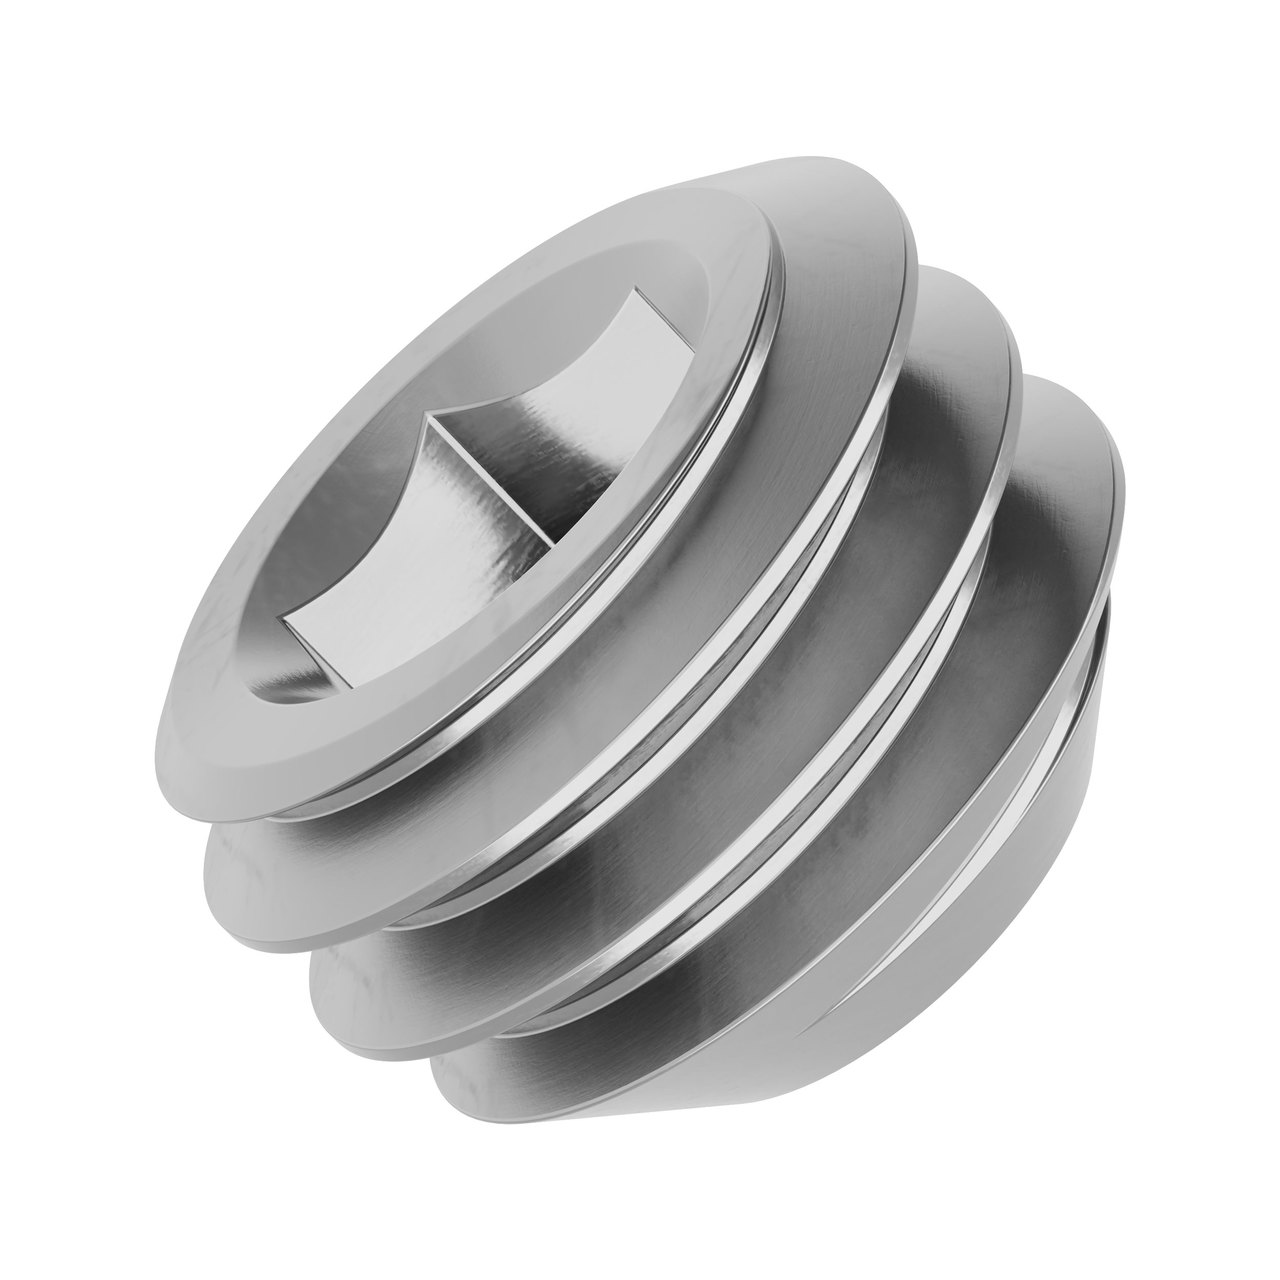 """10-32 Stainless Steel Cup-Point Set-Screw (0.125"""" Length) - 6 Pack"""